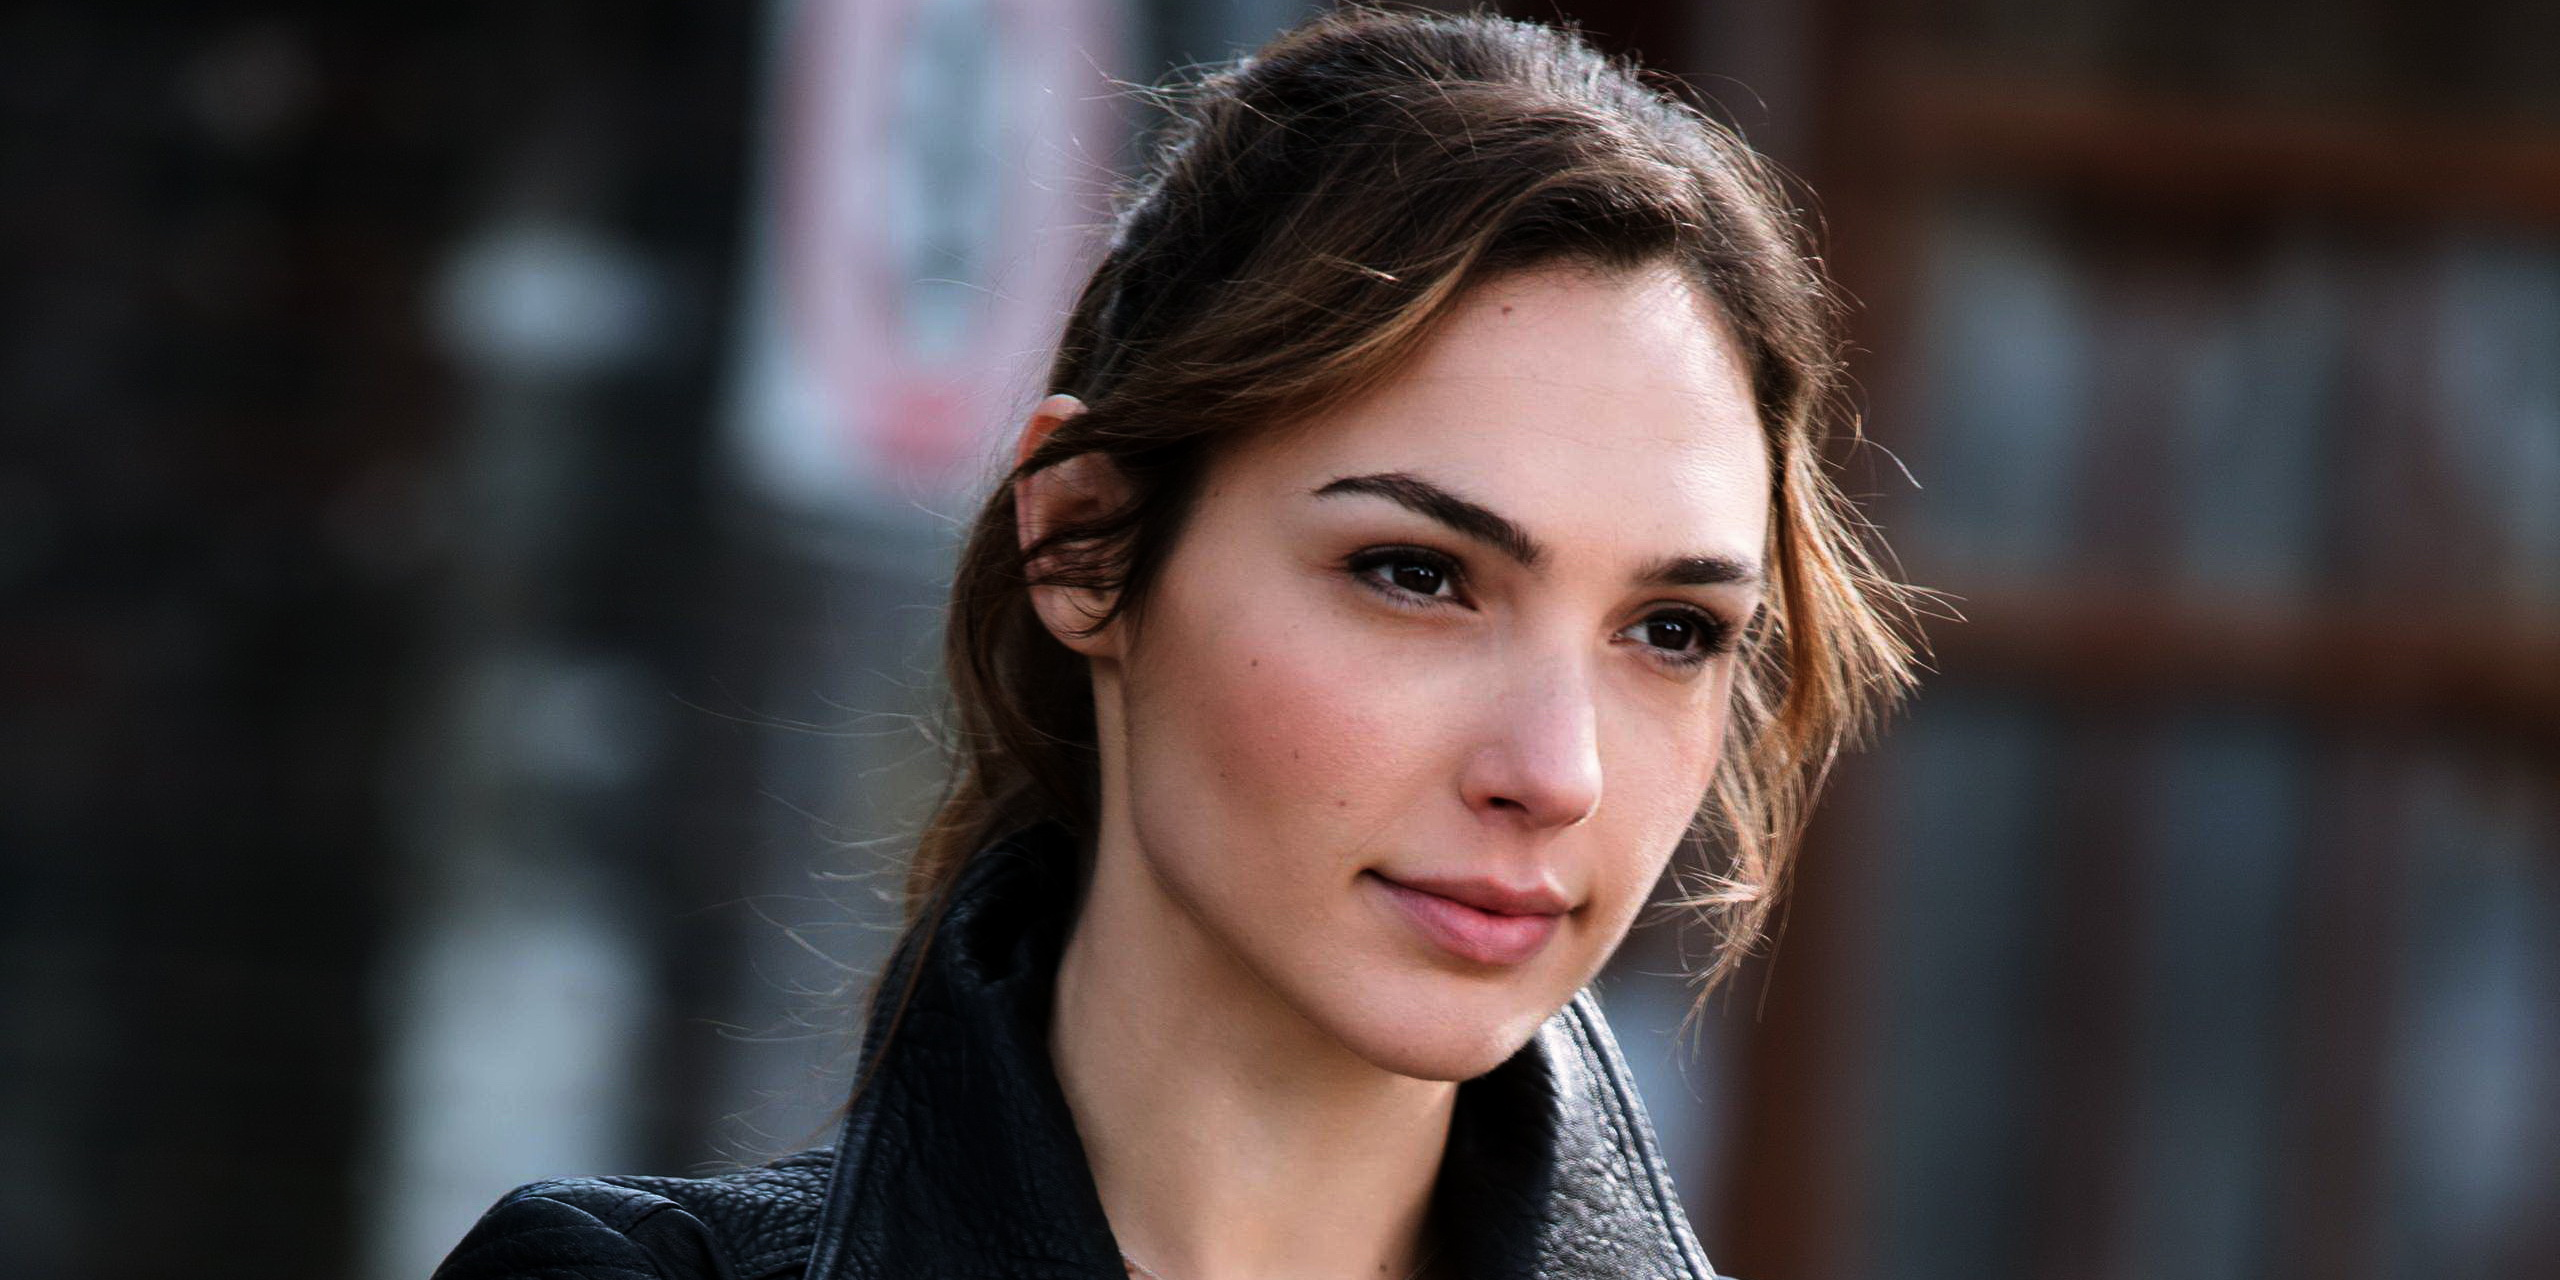 Gal Gadot approached to host Eurovision 2019